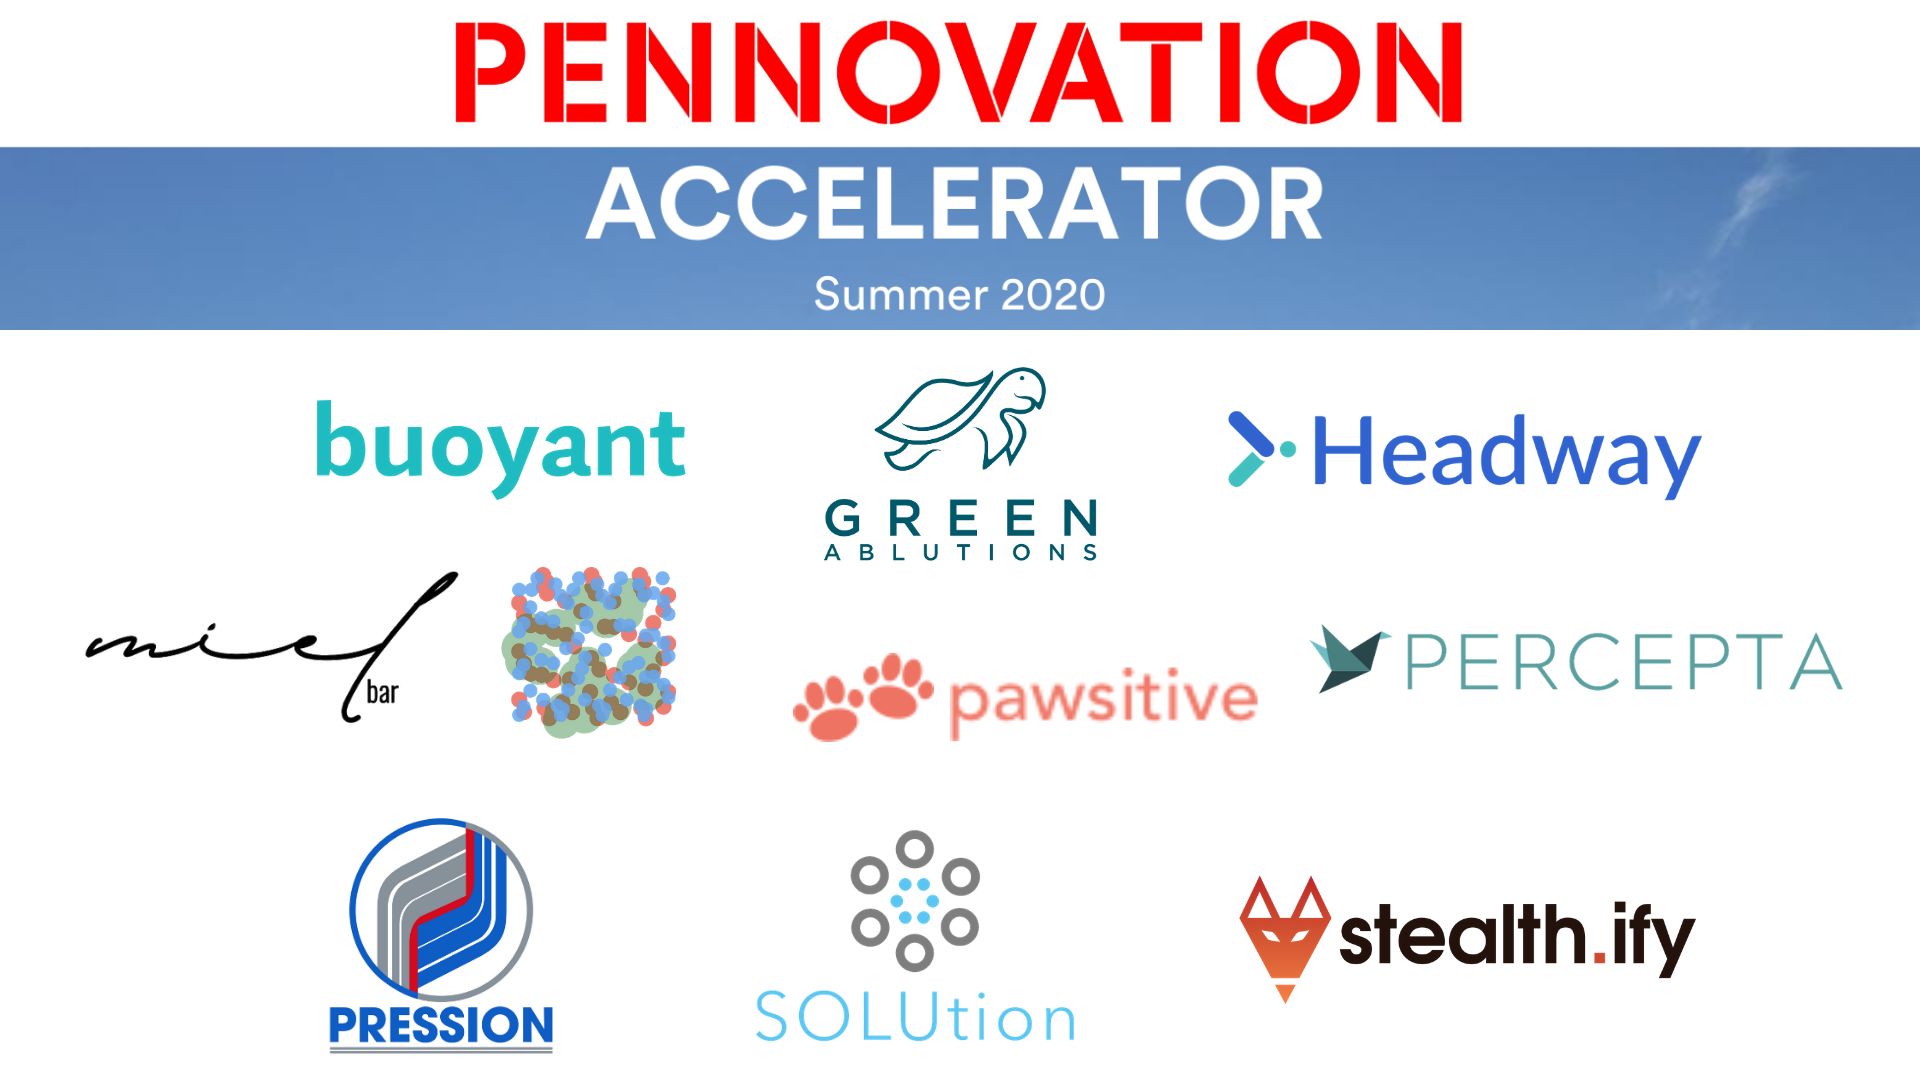 logos of each of the ten companies participating in the pennovation accelerator